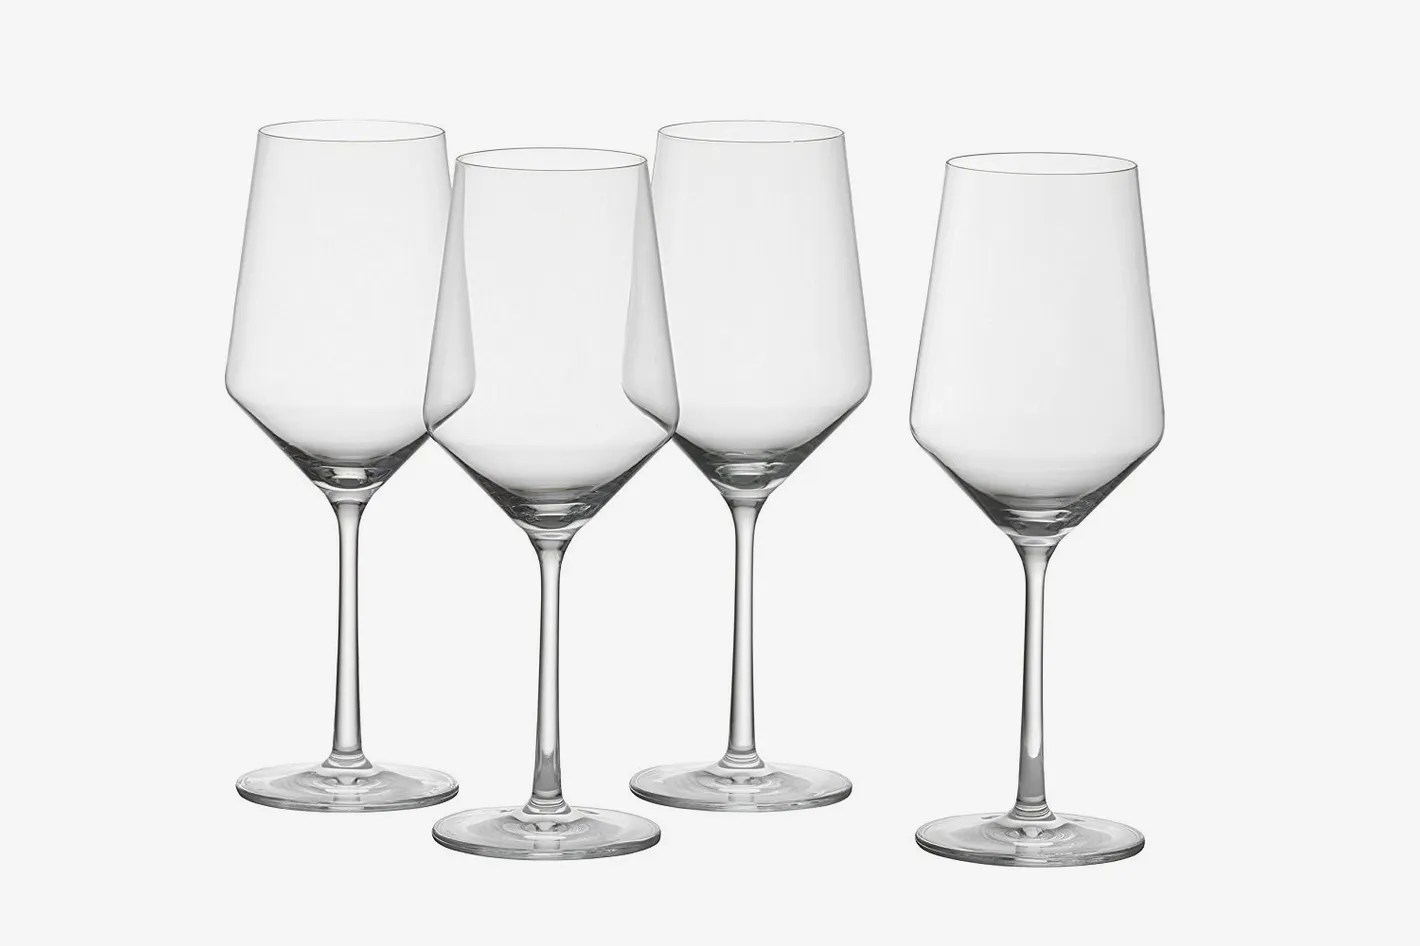 Wine Glasses 8 Best Wine Glasses 2018 Zalto Riedel Libbey